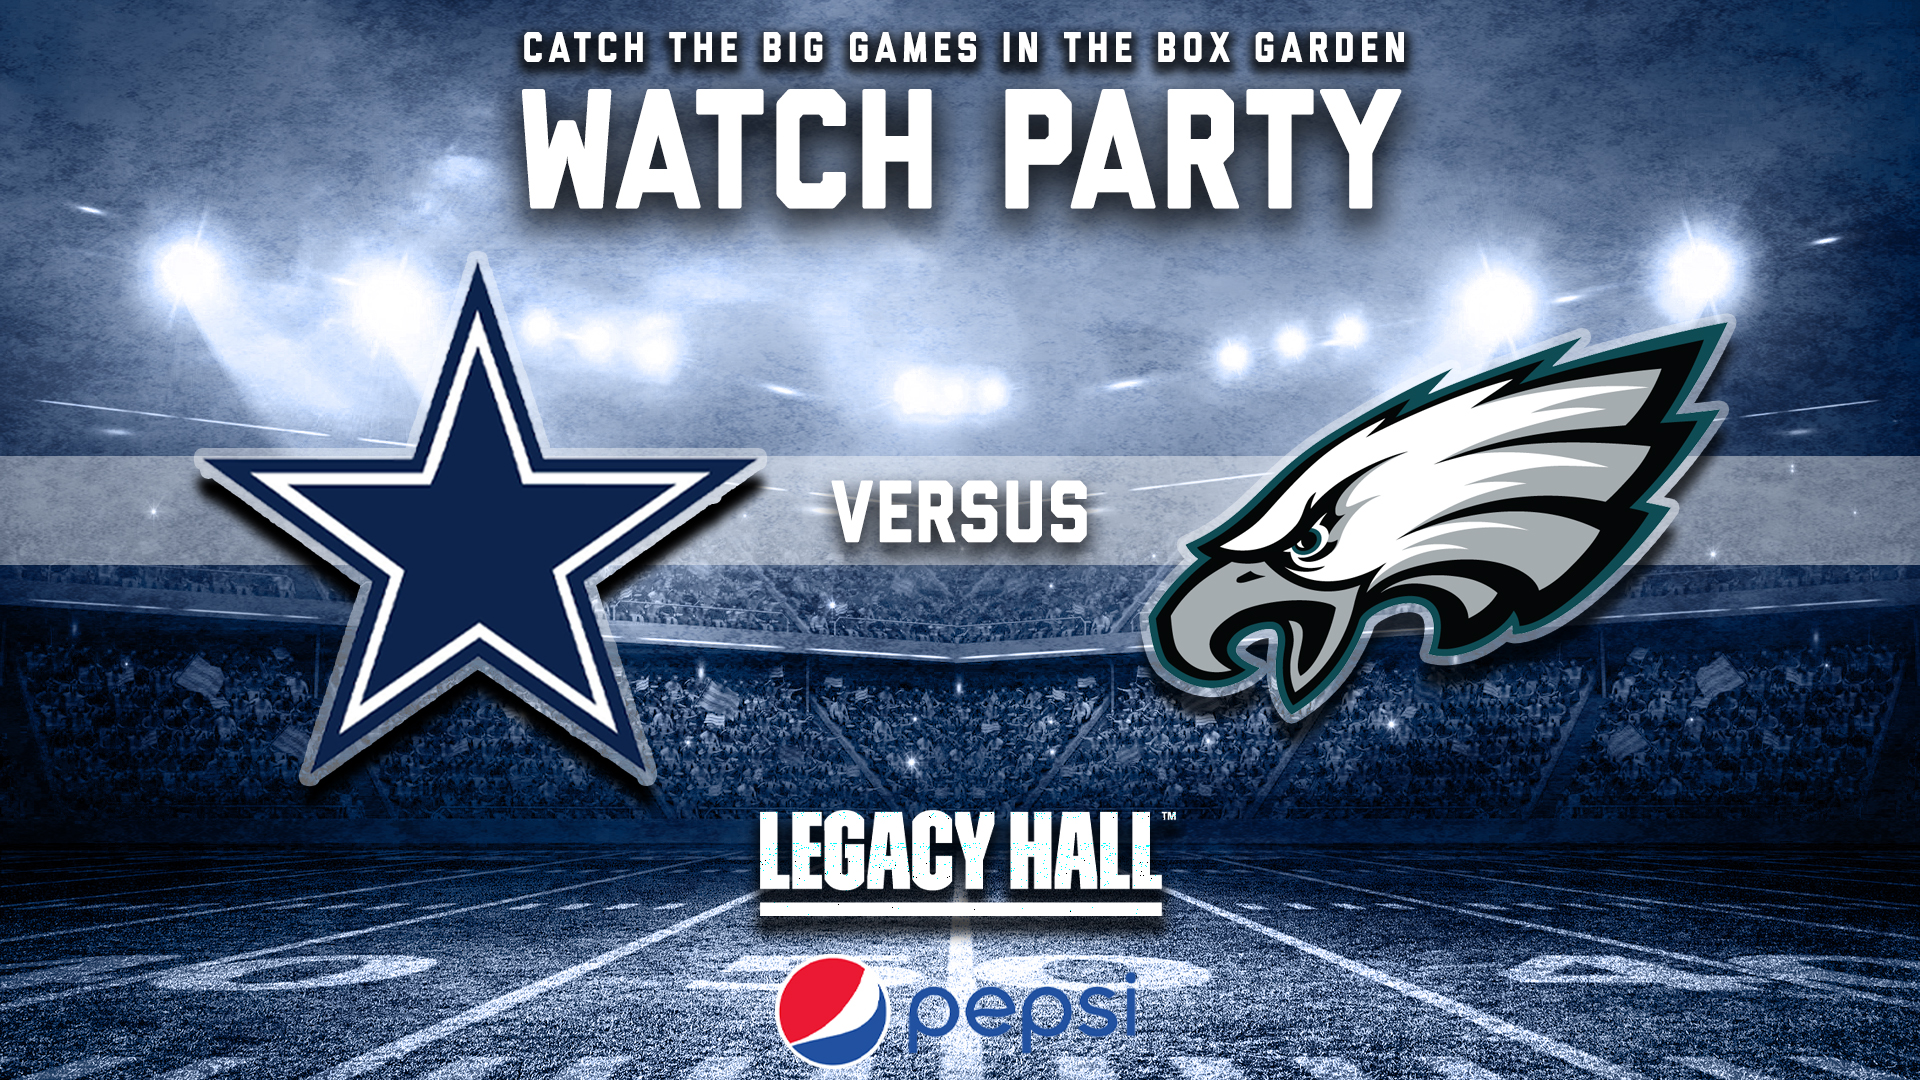 Promo image of Cowboys vs. Eagles Watch Party